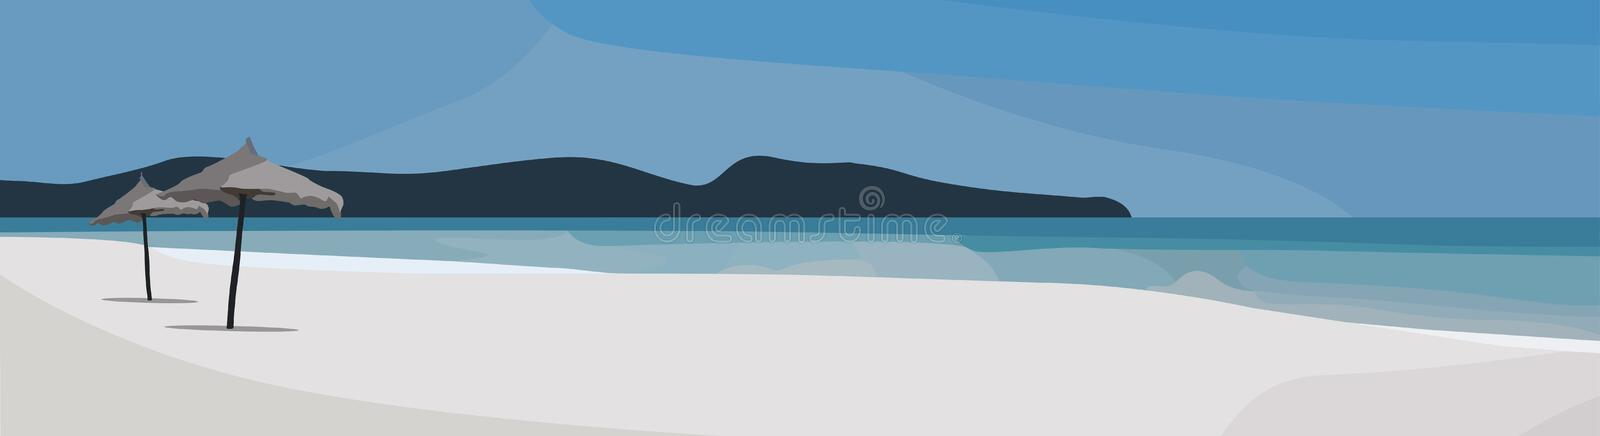 Tropical beach vector background. Sea view illustration. Summer time panorama royalty free illustration